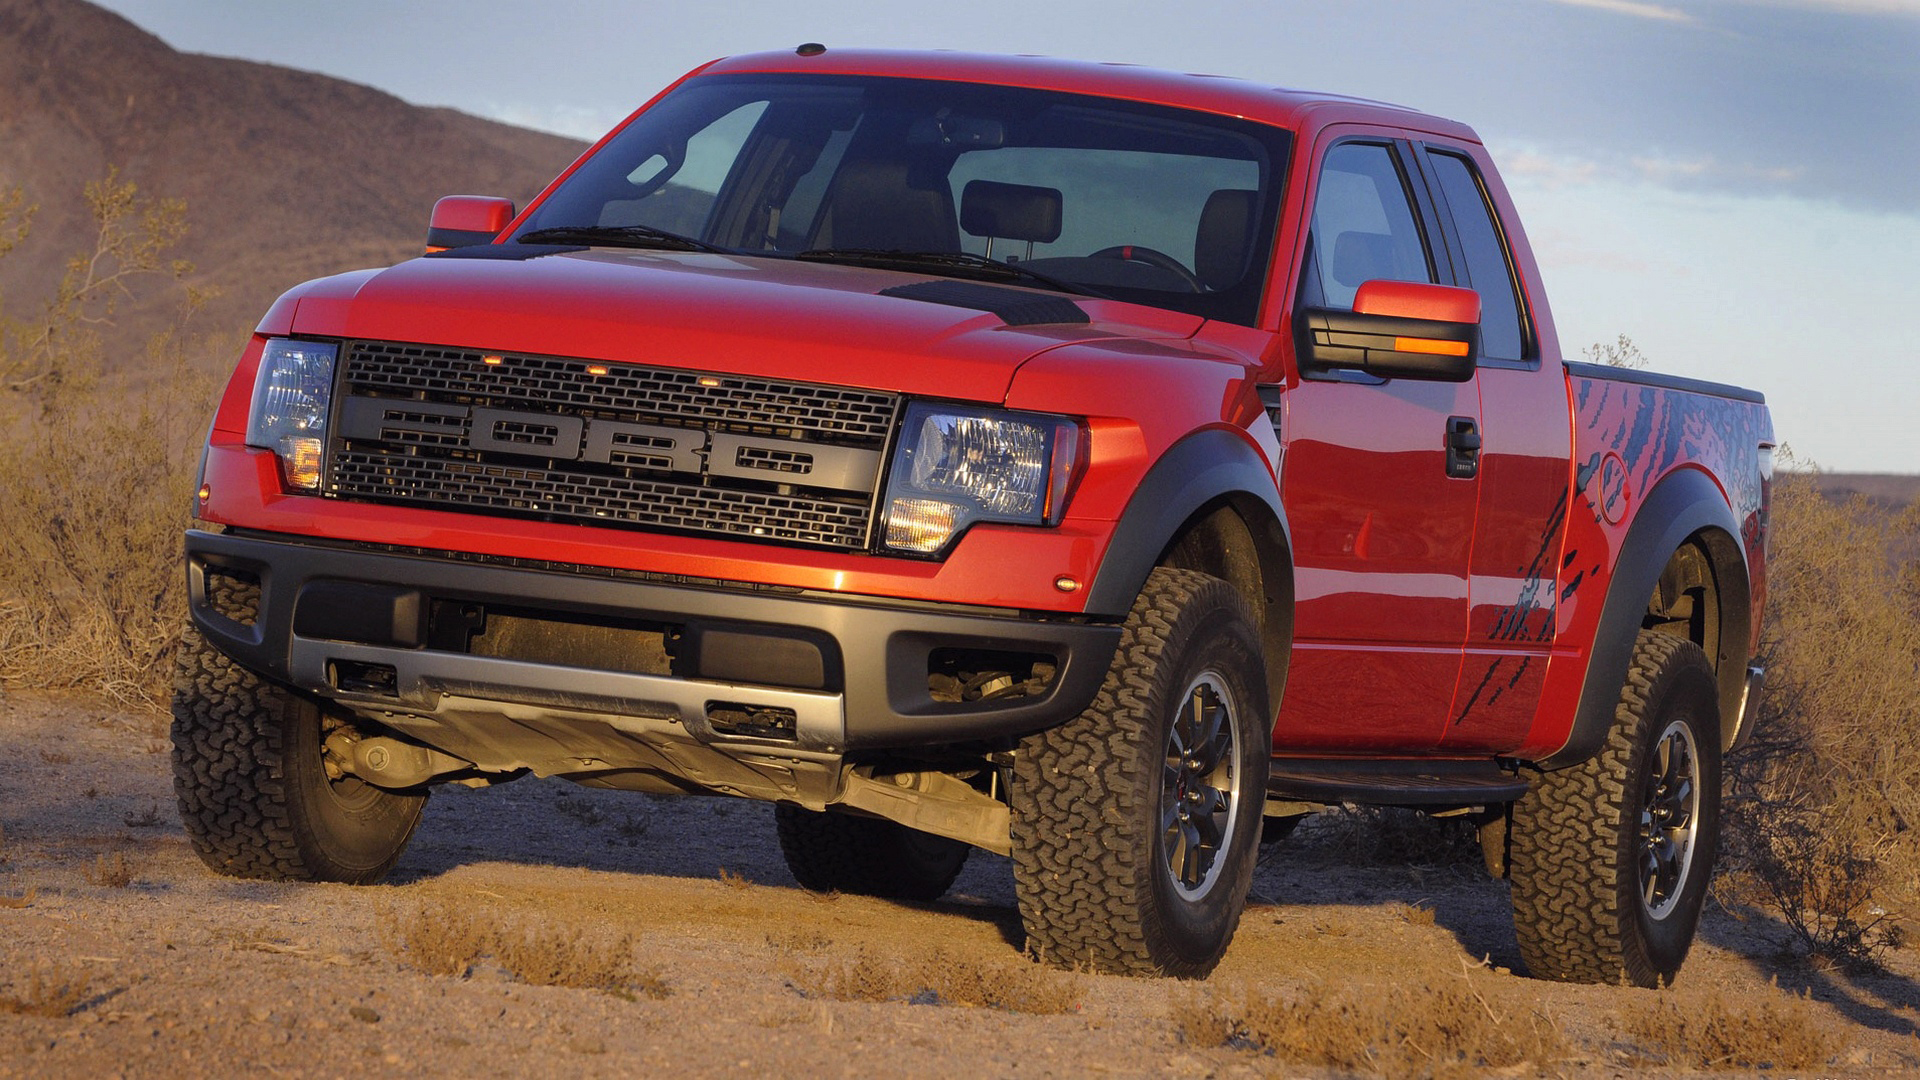 Ford 4x4 Truck Wallpaper HD Wallpapers 1920x1080